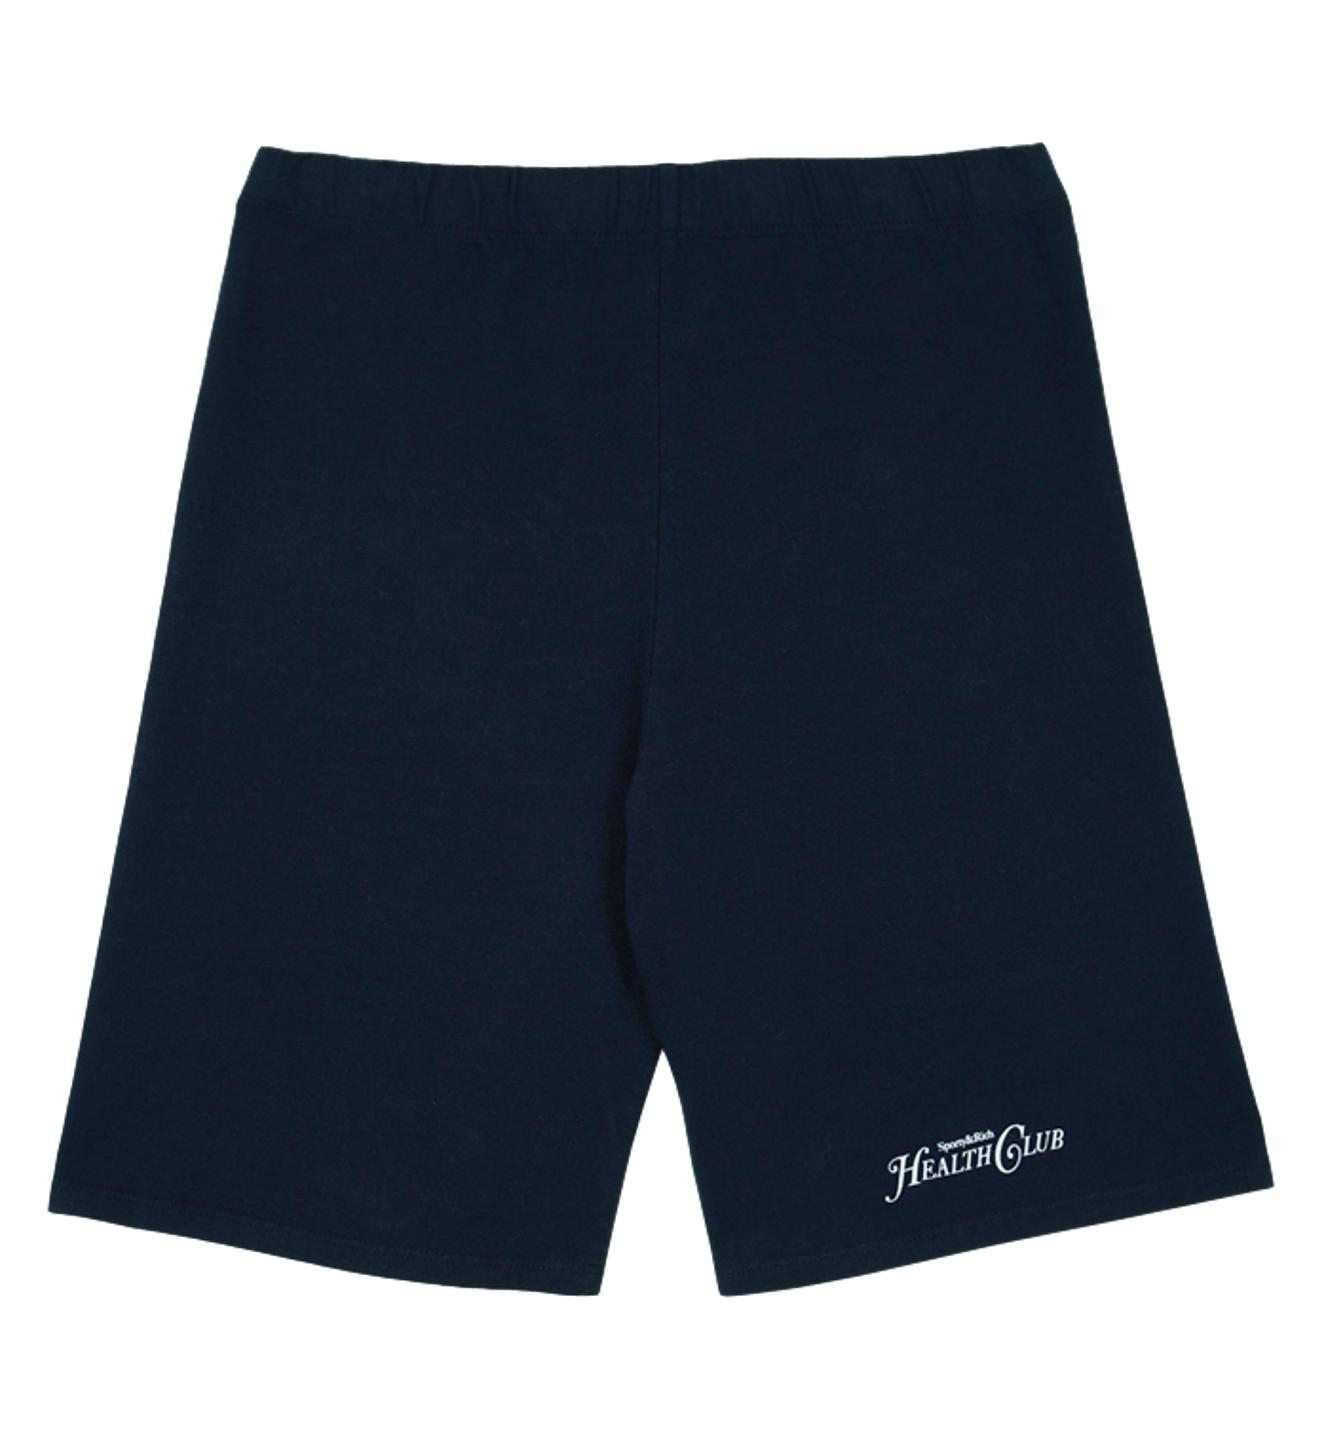 Rizzoli Biker Short / Navy Womens Sporty & Rich